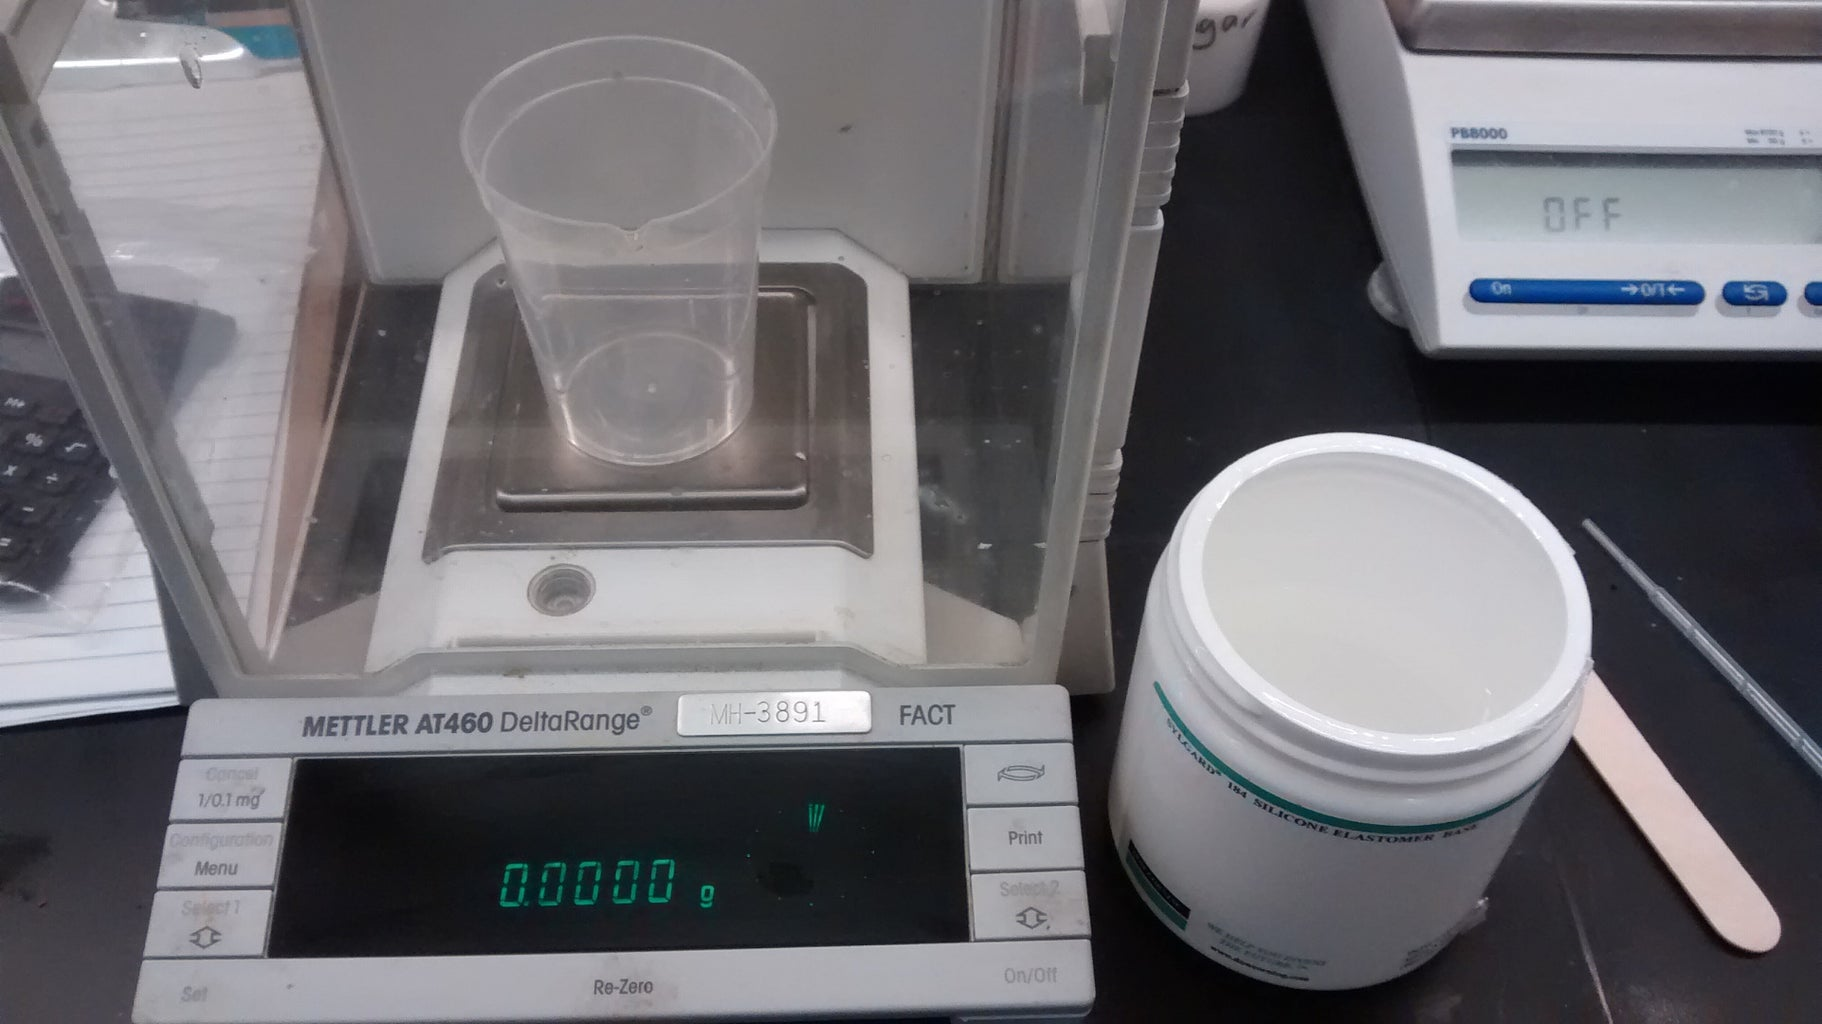 Mix the PDMS